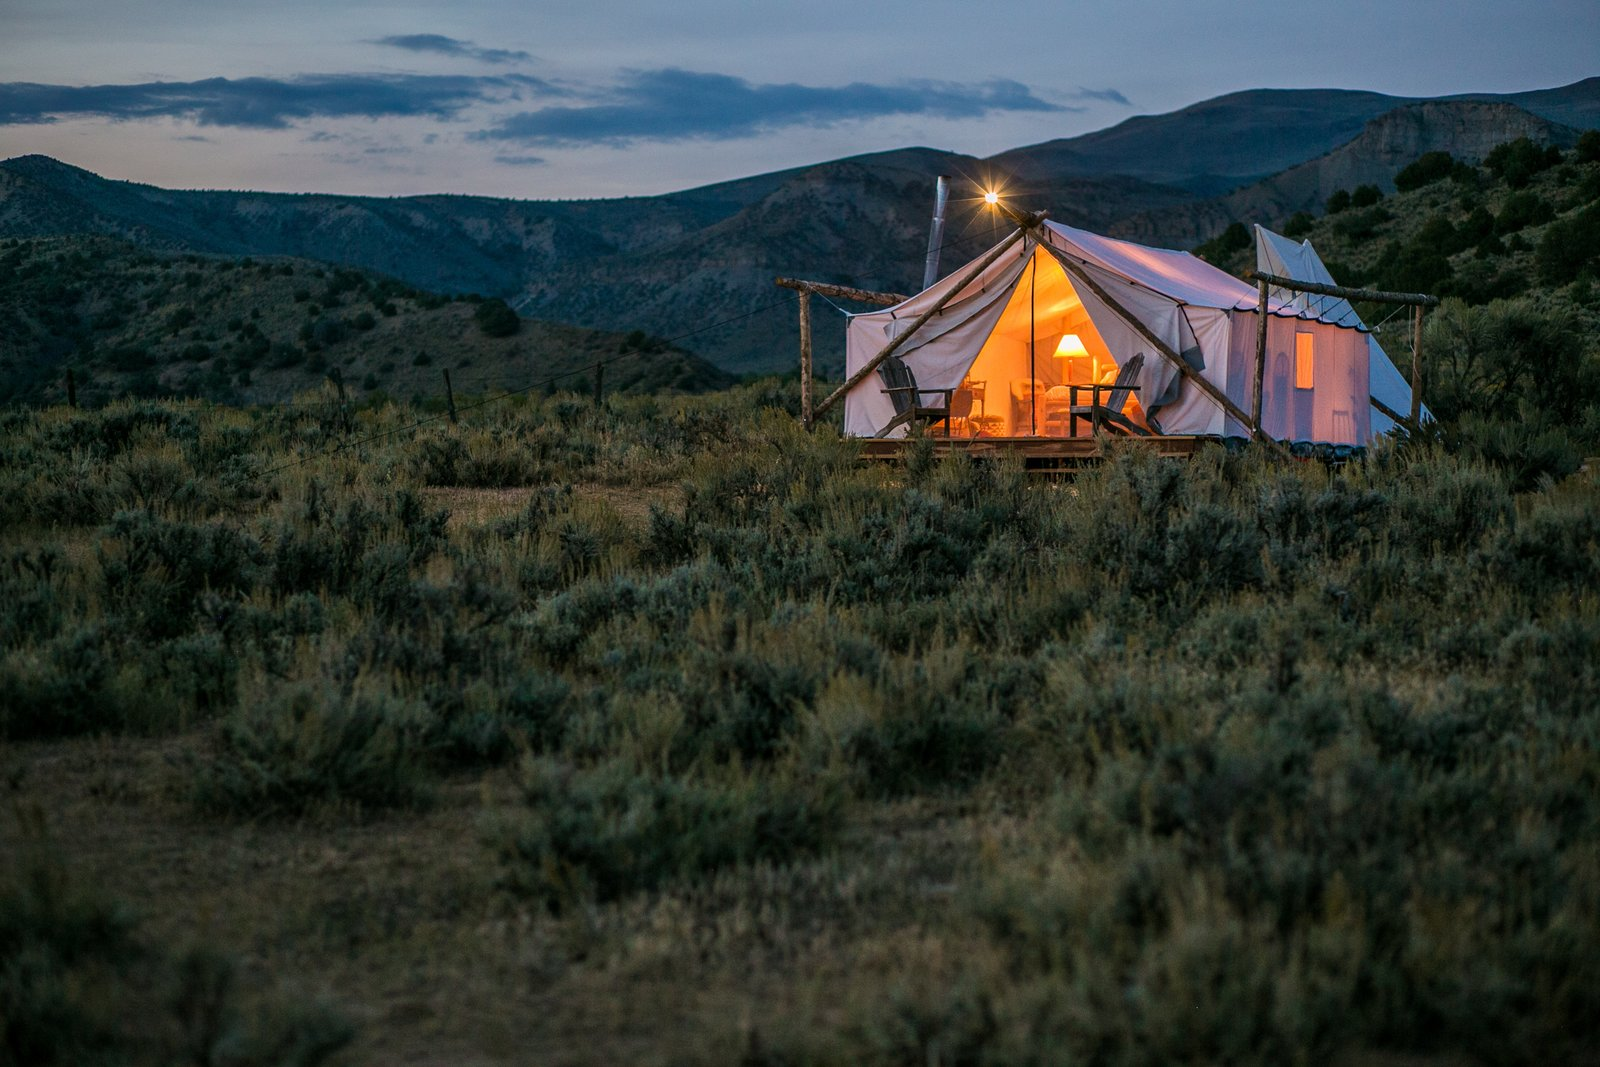 Photo 1 of 12 in Get the Modern Camping Experience You Crave at One of These New Secluded Retreats